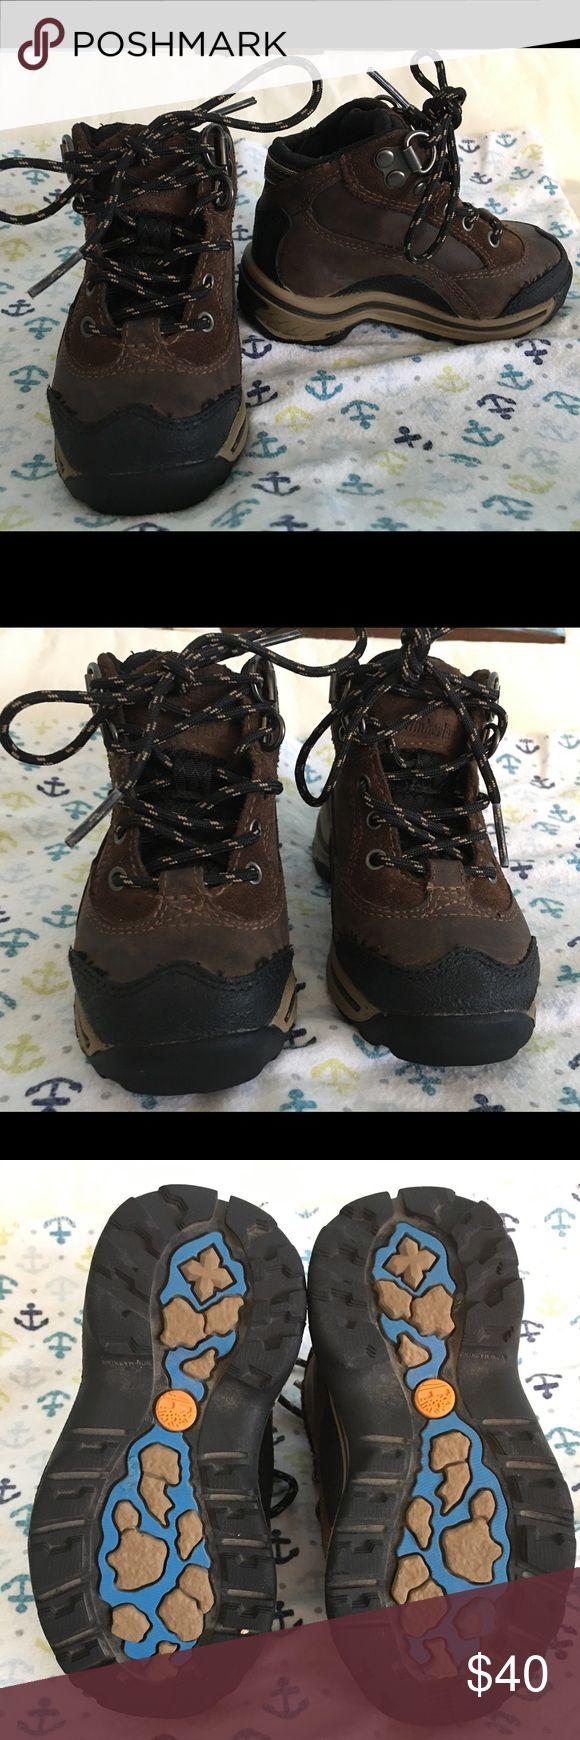 Timberland Waterproof Hiking Boots for Toddler Very gently used Timberland Waterproof Hiking Boots for Toddler. Used a total of three times. Have so much life left in them. Like new! They are waterproof BUT these were never in any water. Timberland Shoes Boots